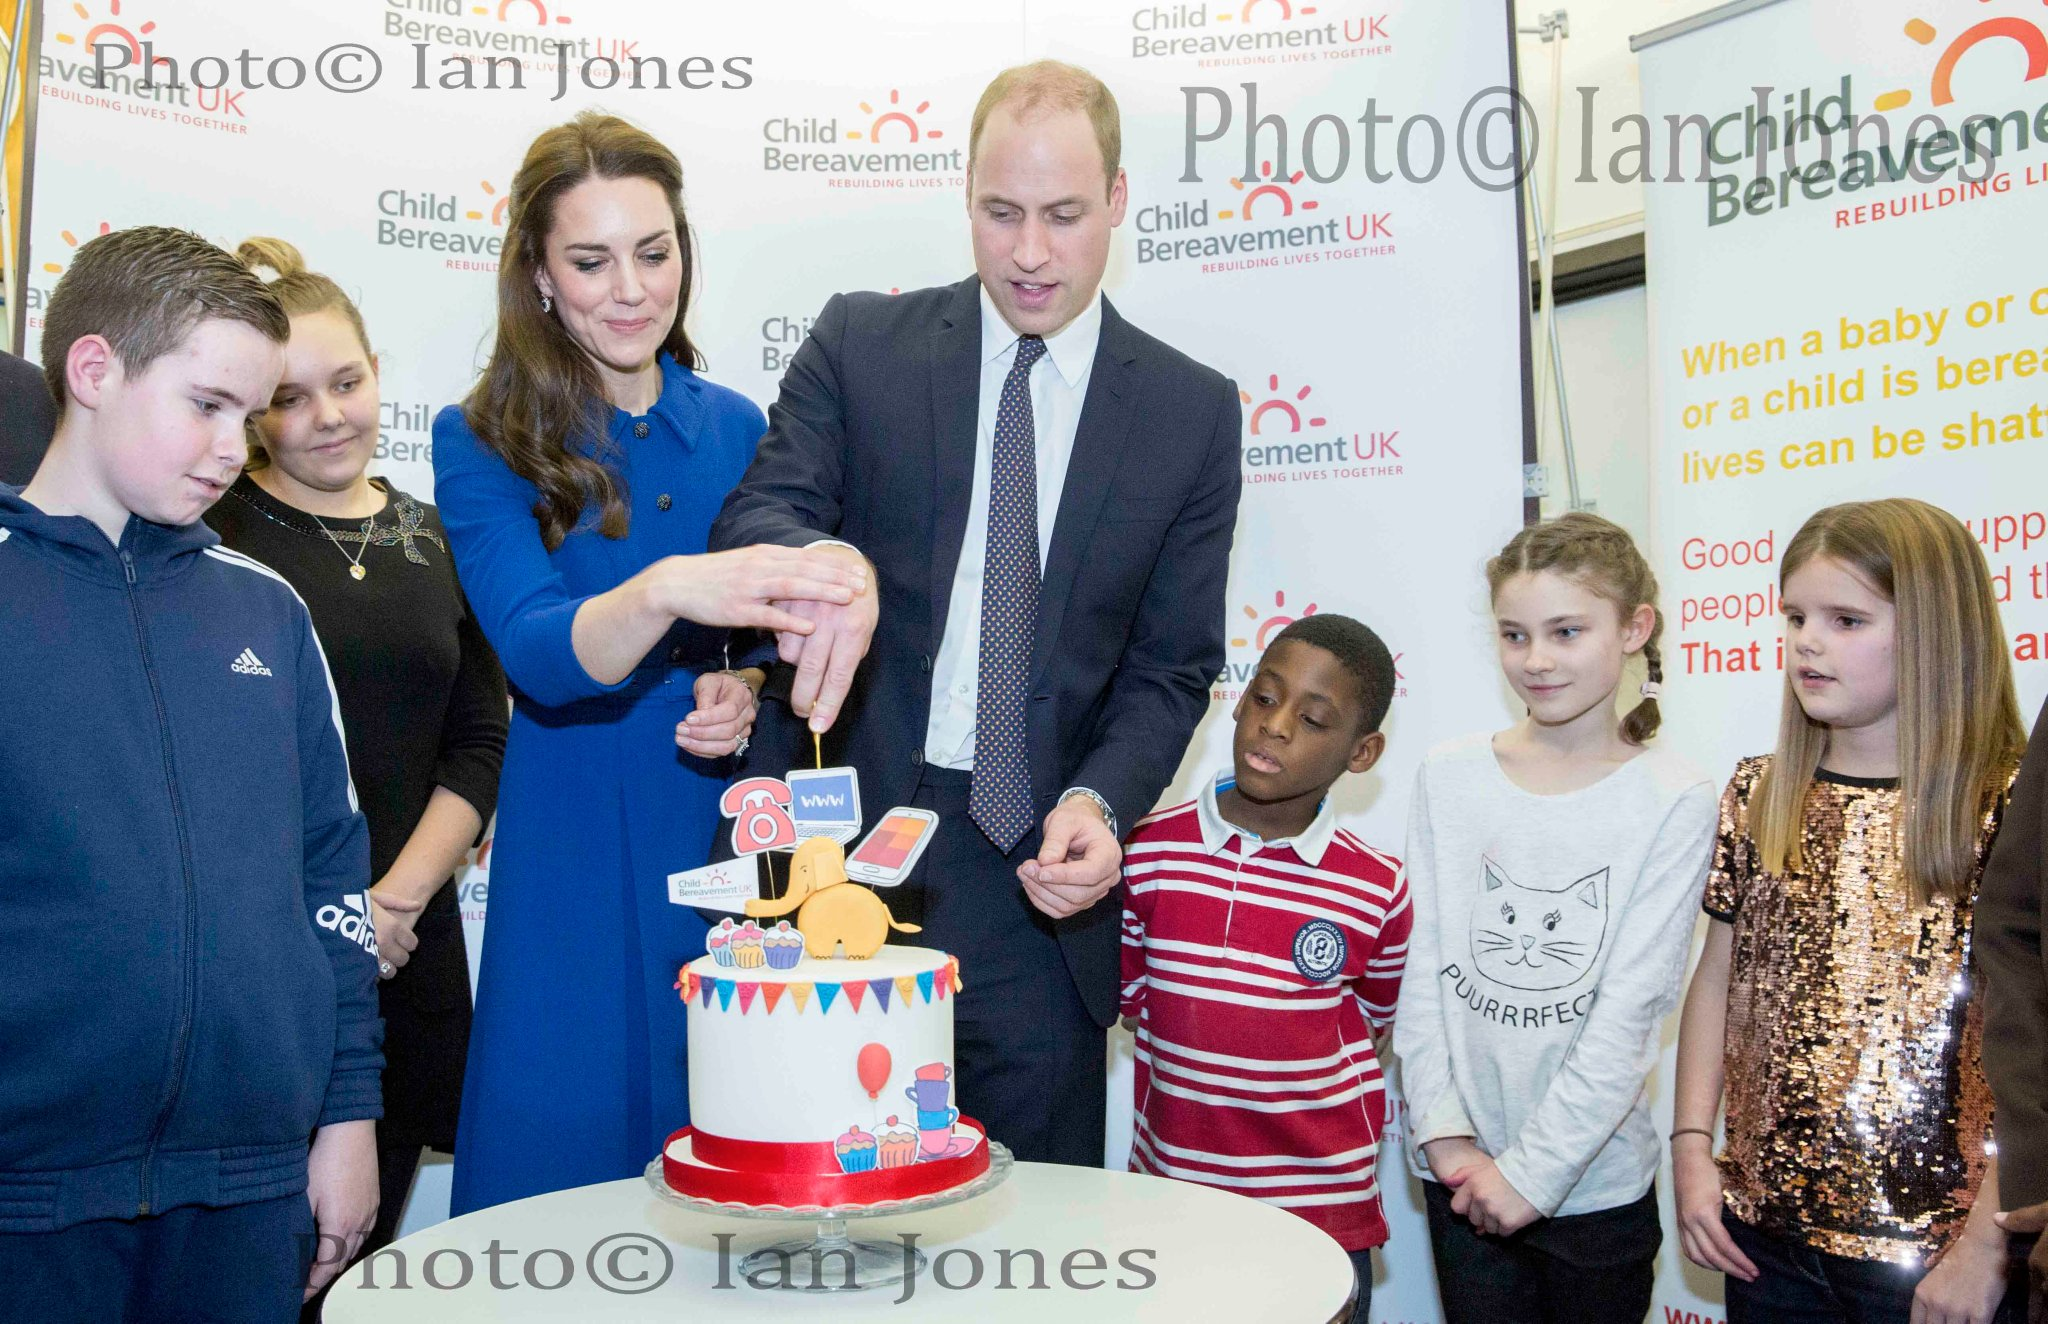 The Duke of Cambridge, Patron, Child Bereavement UK, together with the Duchess of Cambridge, visited Child Bereavement UK Centre